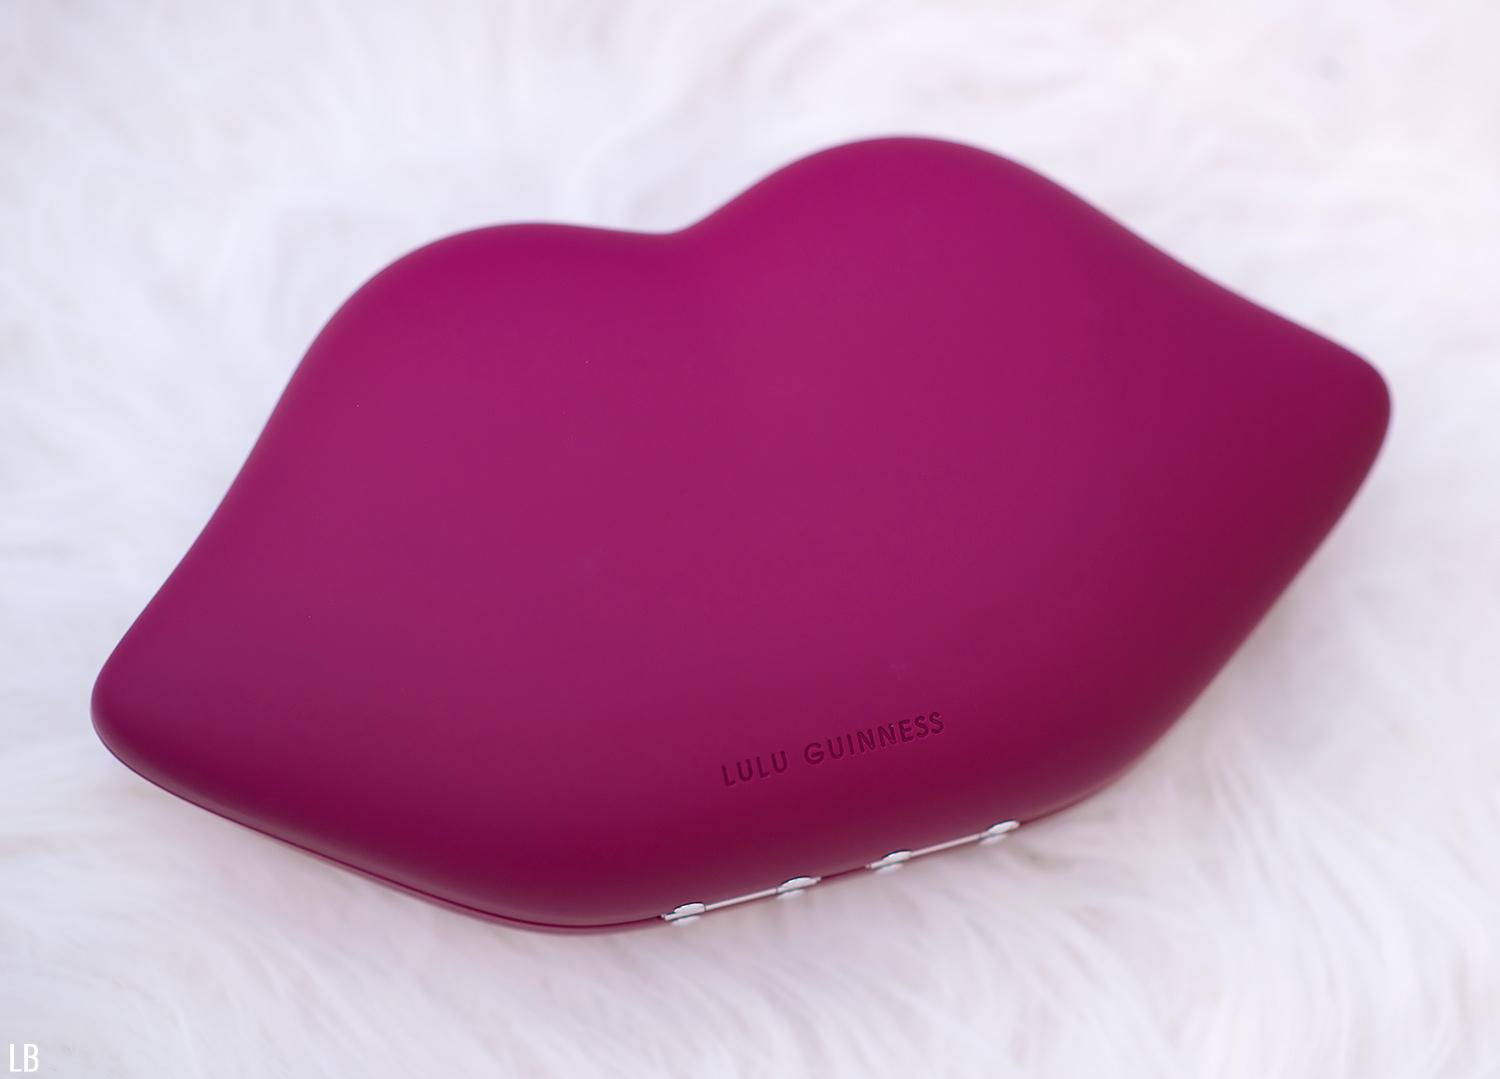 Lulu Guinness Cassis Powder Coated Lips Clutch 3